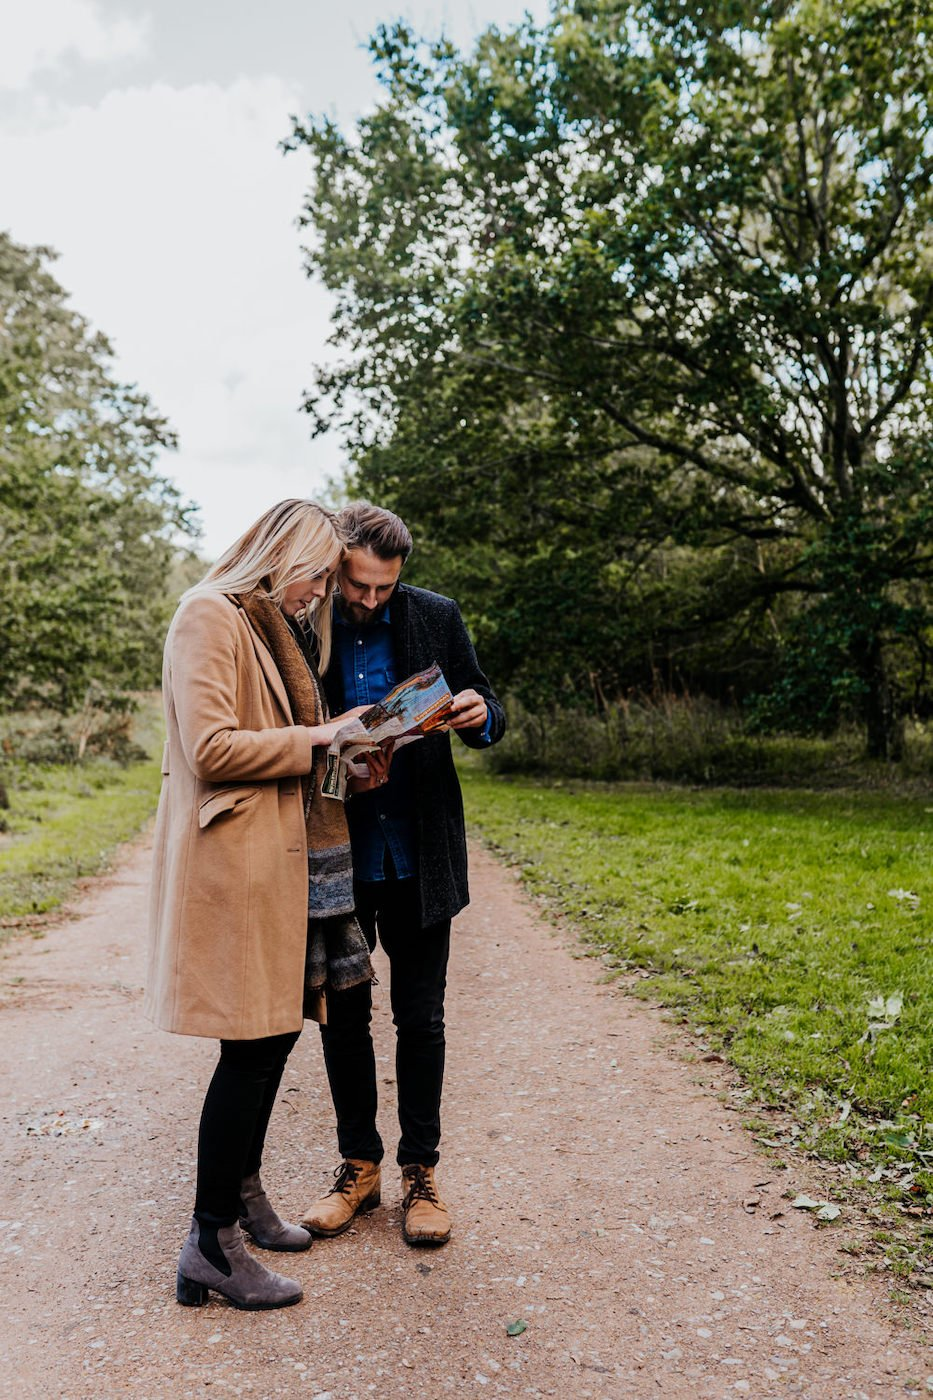 Katy and Alex, Westonbirt Arboretum Engagement Shoot 1